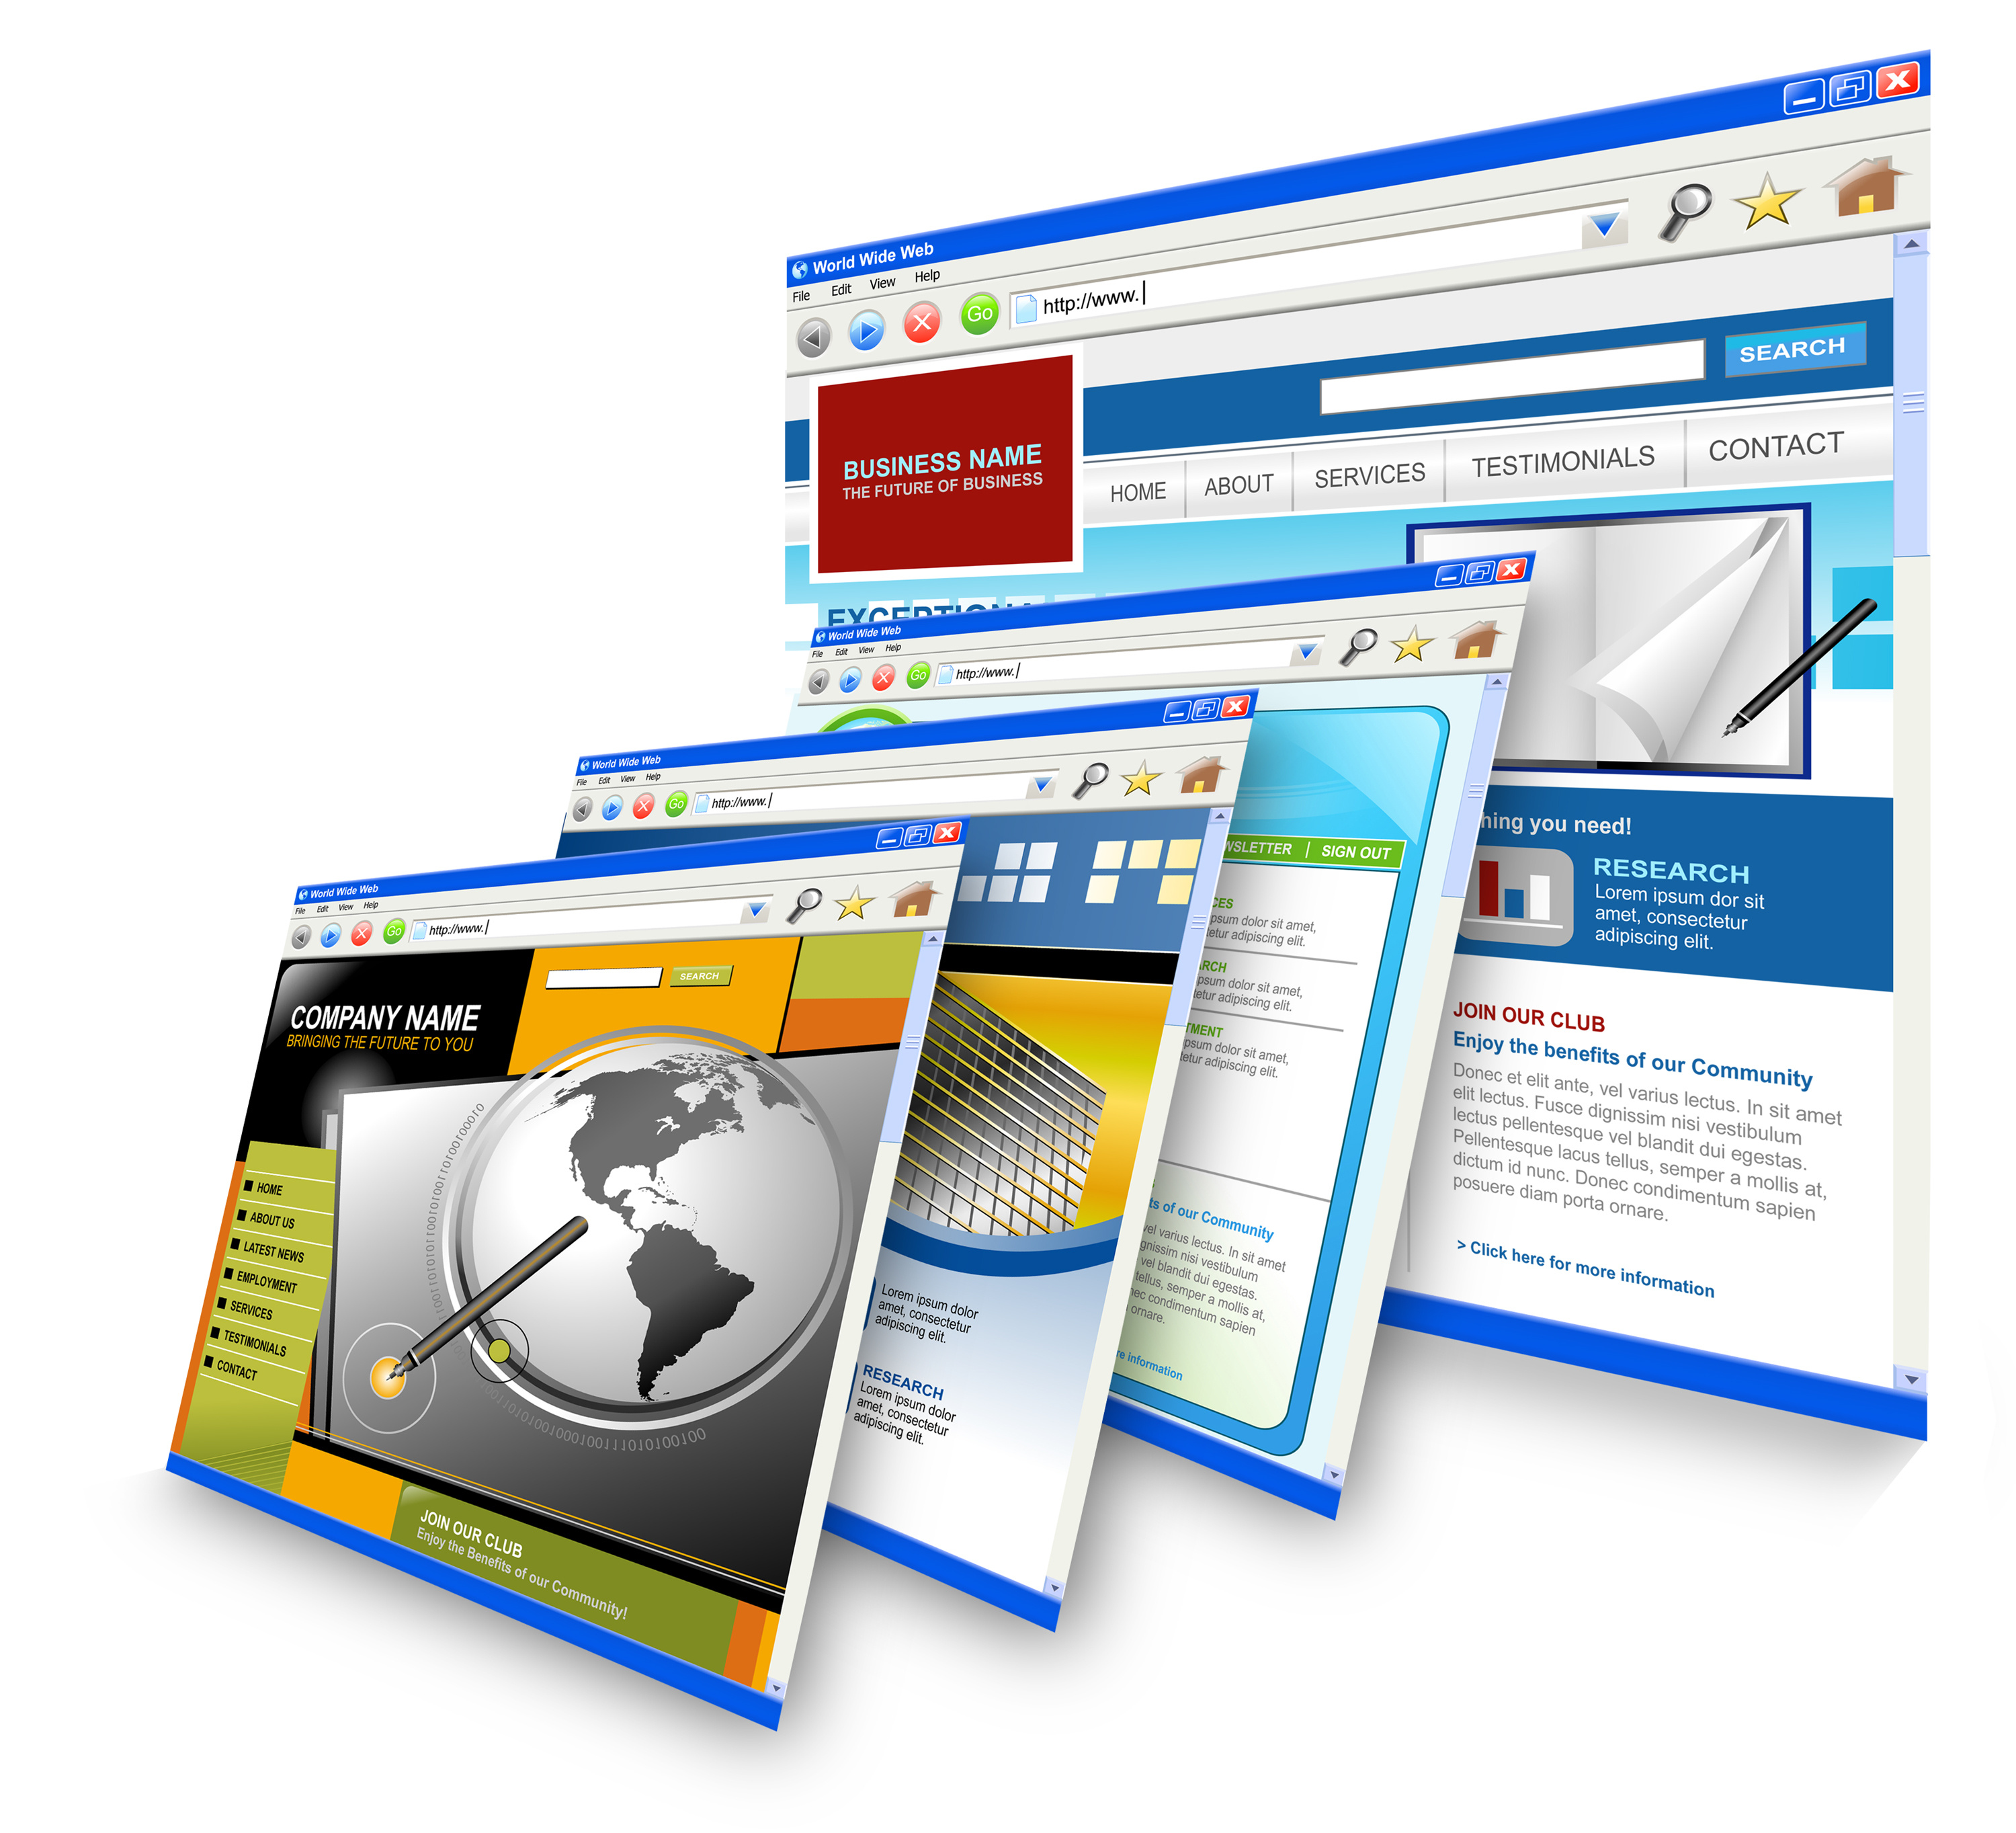 An E-Commerce Website Design Is All What You Need - Image 1